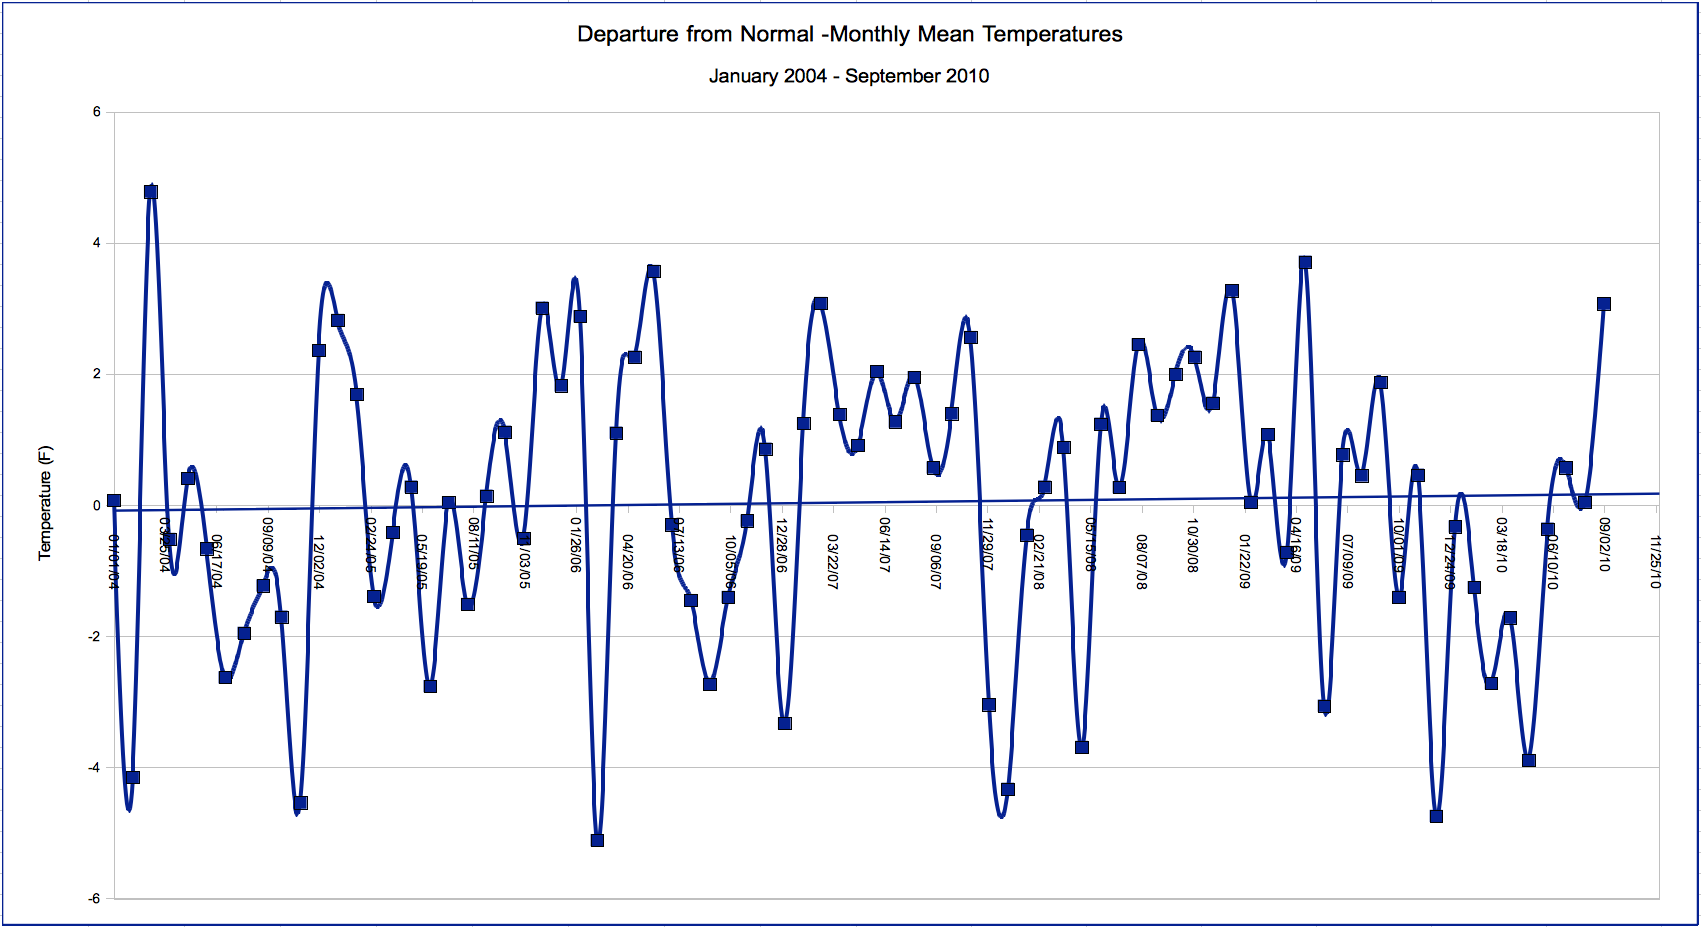 Departure from normal mean temperatures, 2004-2010